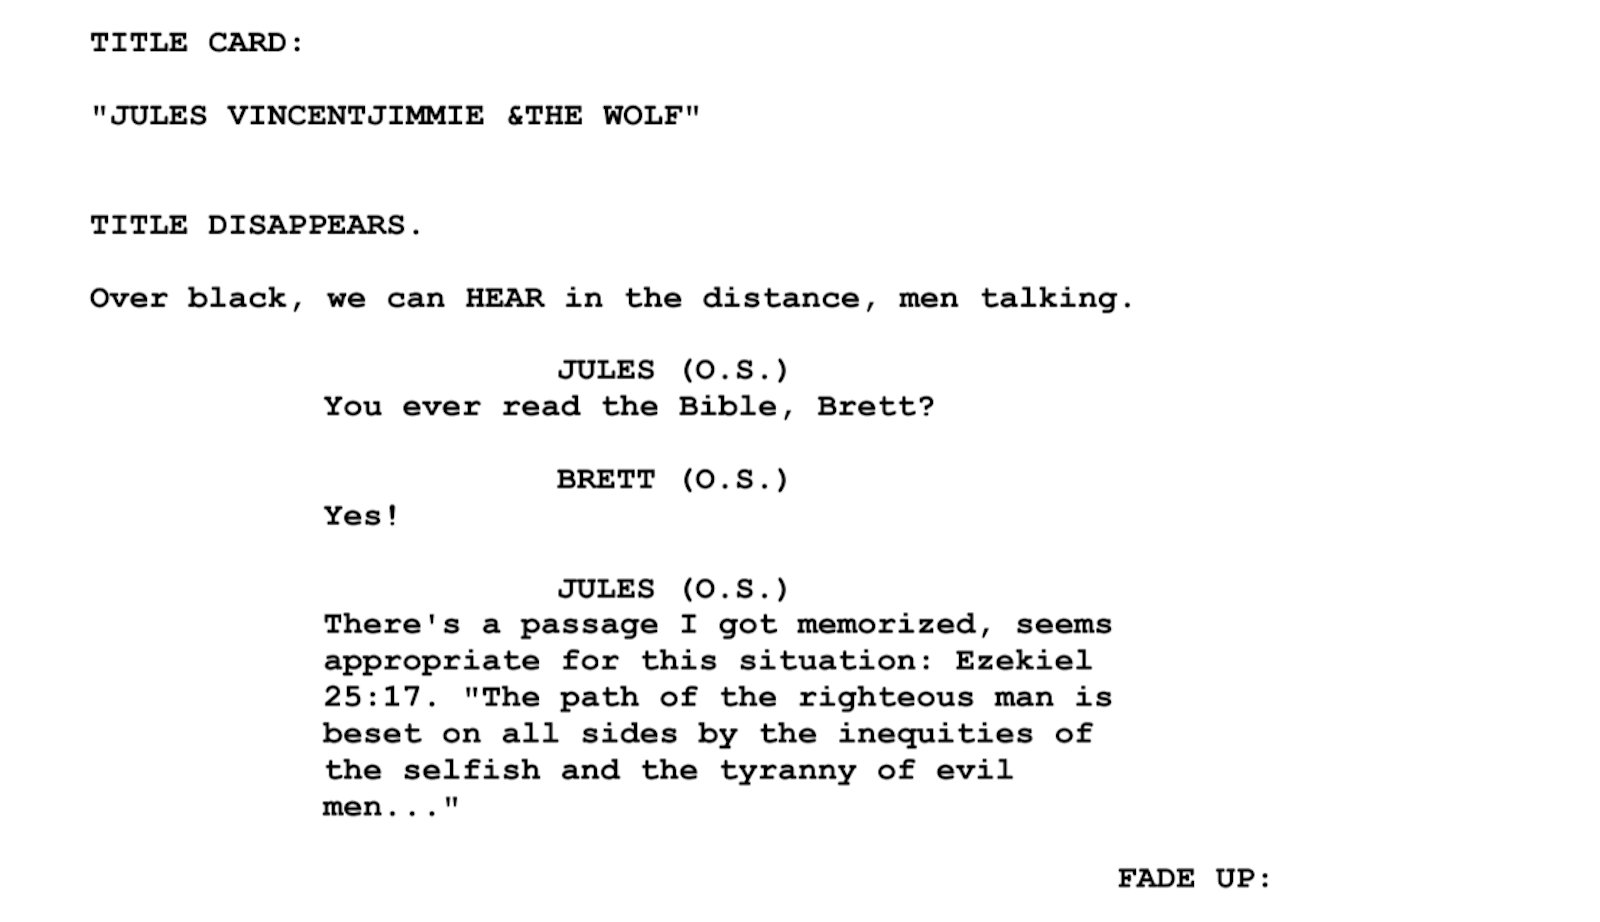 Screenplay Examples - Pulp Fiction Script - Screenplay Snippet 5 - Jules